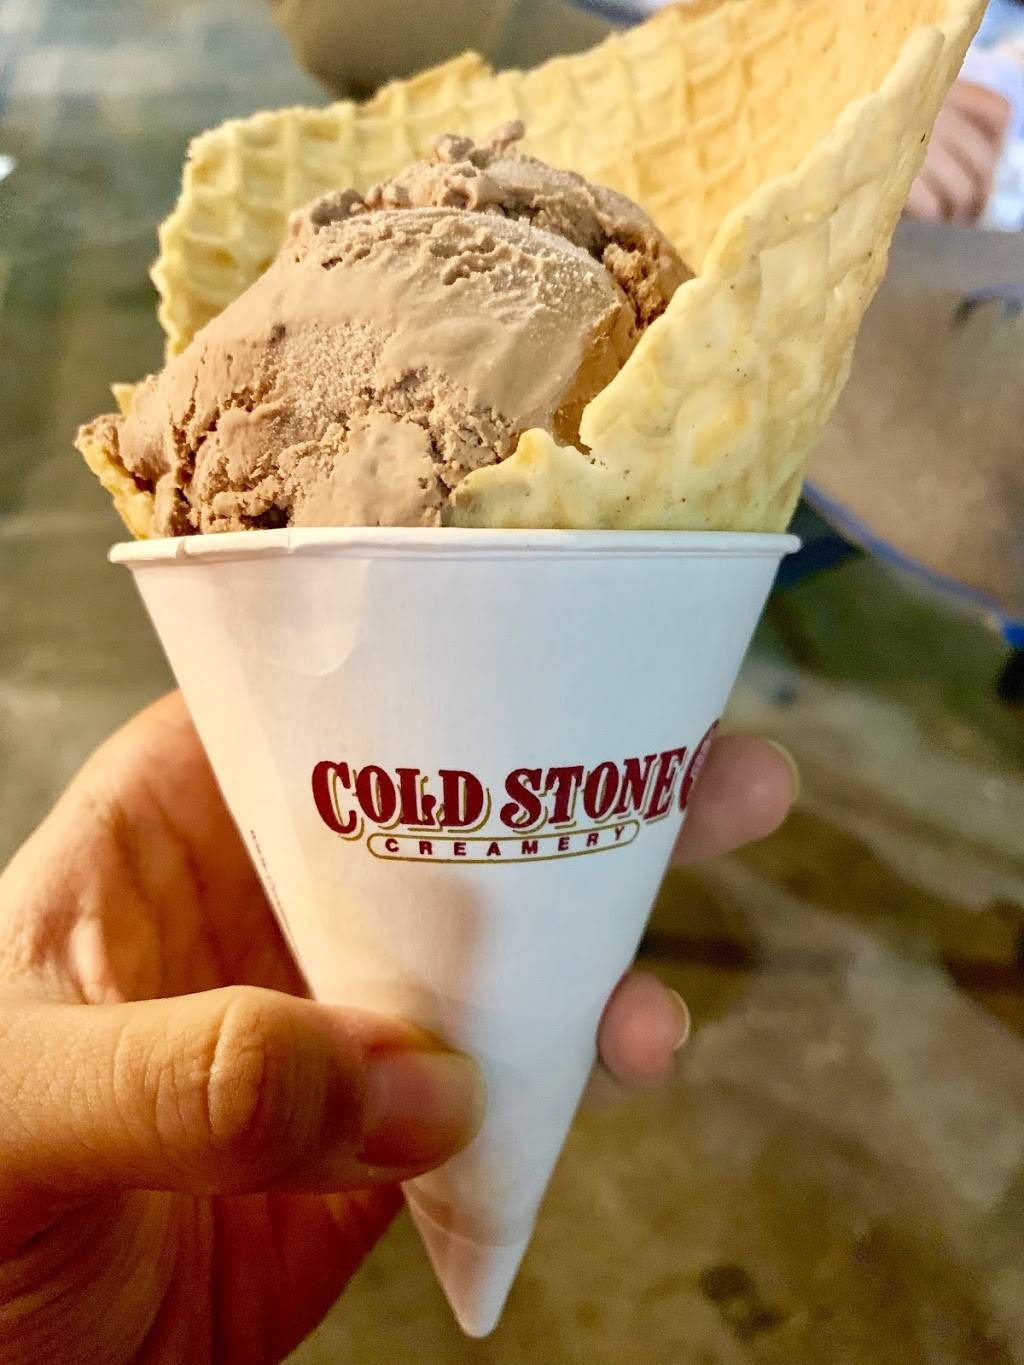 Cold Stone Creamery | bakery | 7220 US Hwy 19 N, Pinellas Park, FL 33781, USA | 7275227840 OR +1 727-522-7840